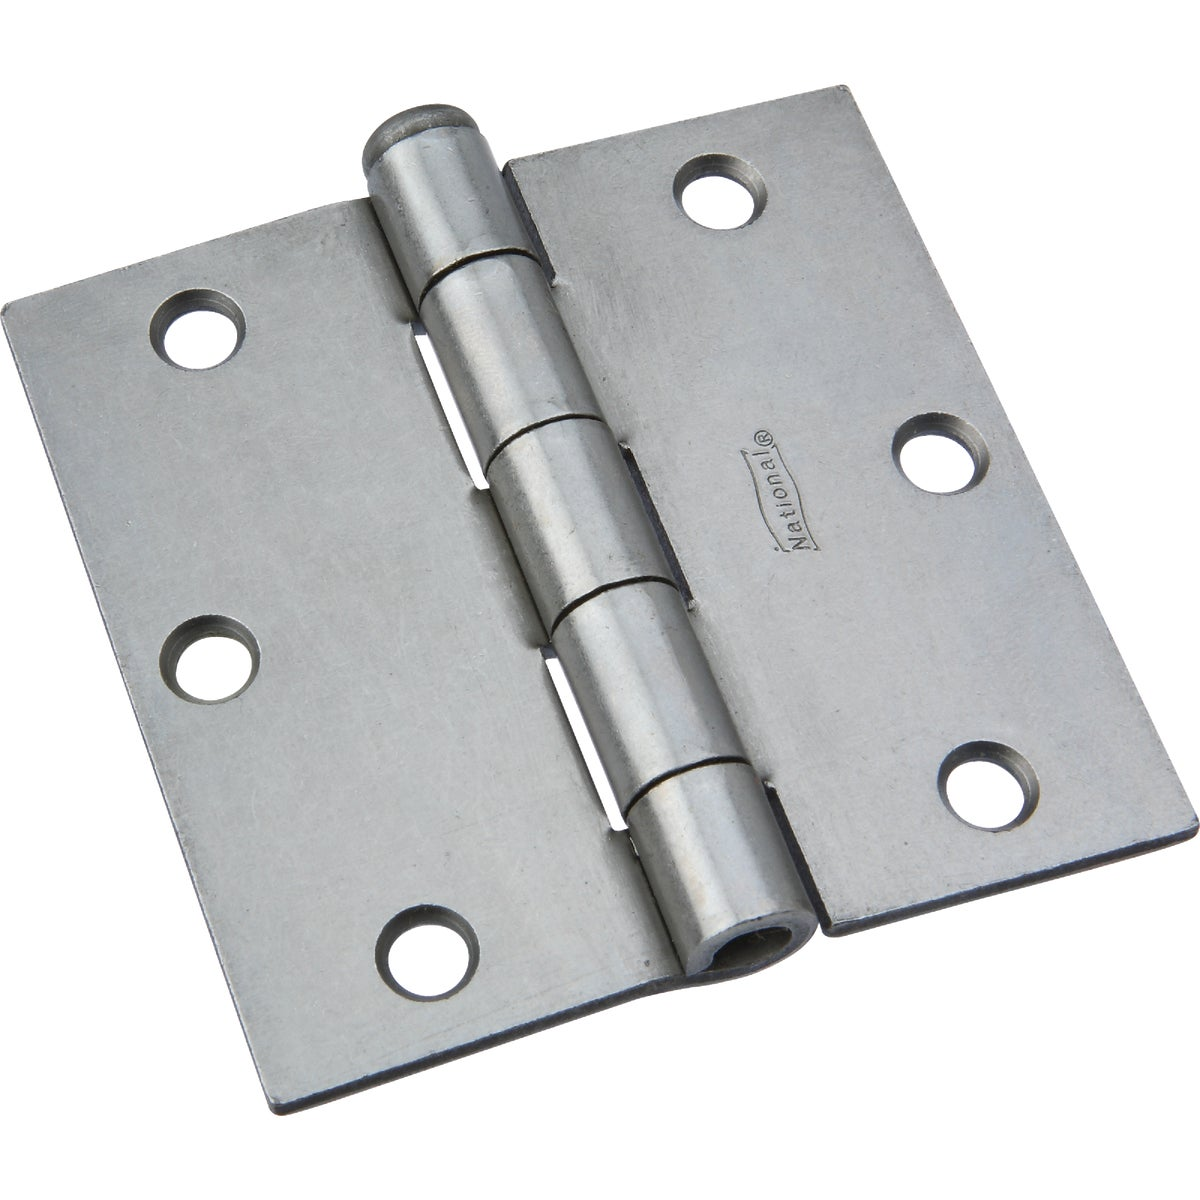 "3-1/2"" BROAD HINGE - N139873 by National Mfg Co"